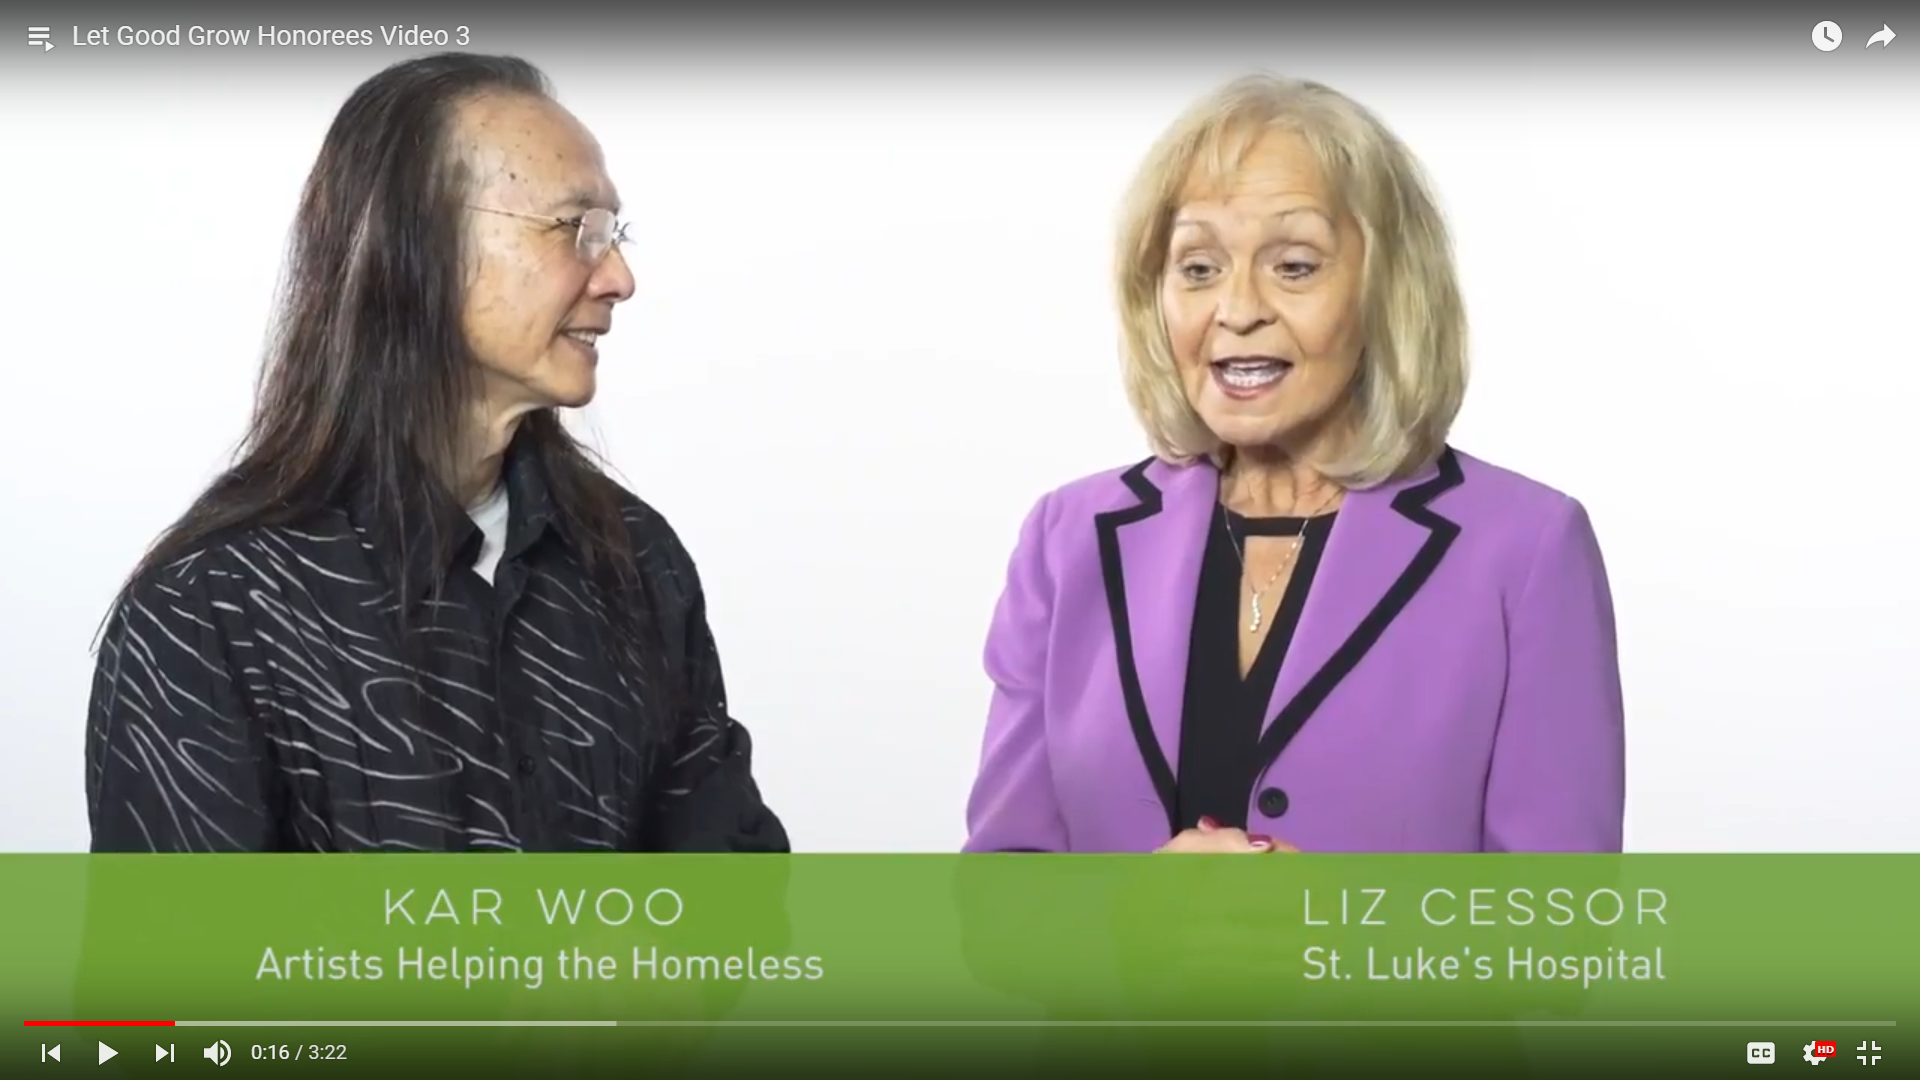 Kar Woo and Liz Cessor Nonprofit Connect Video Screenshot